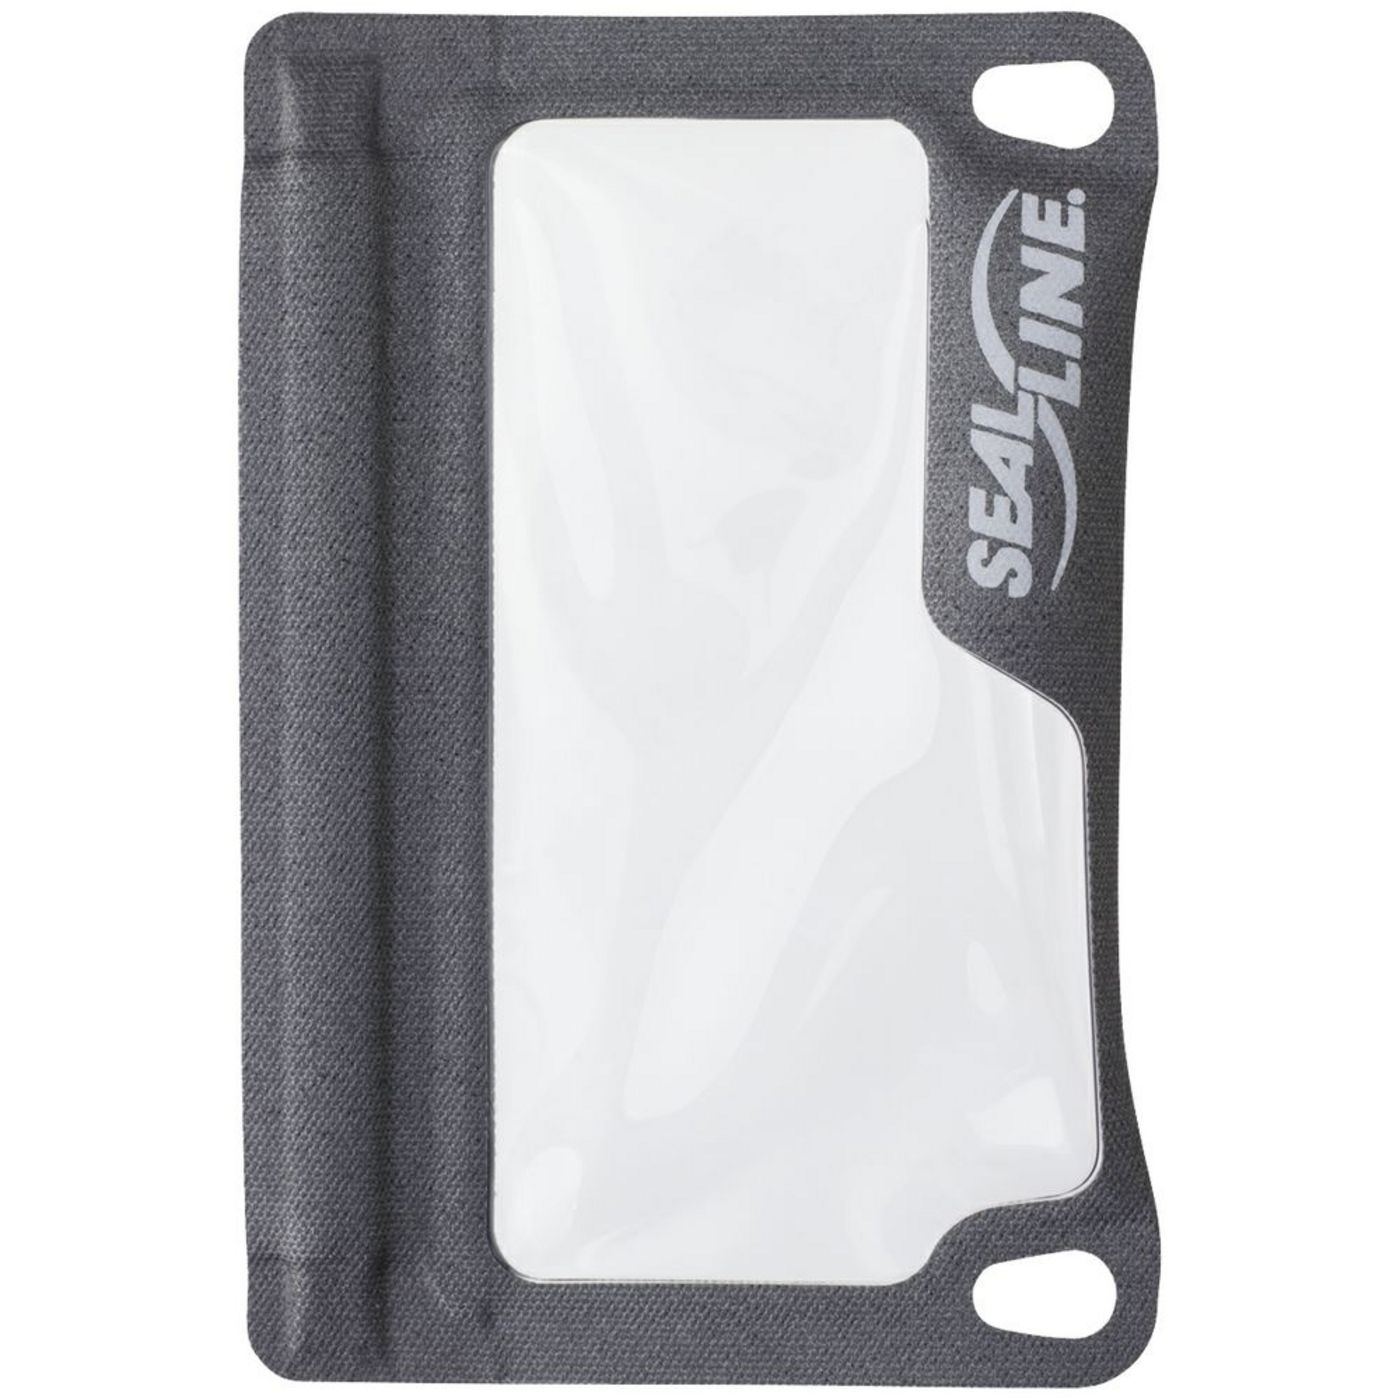 Sealline E Case Large